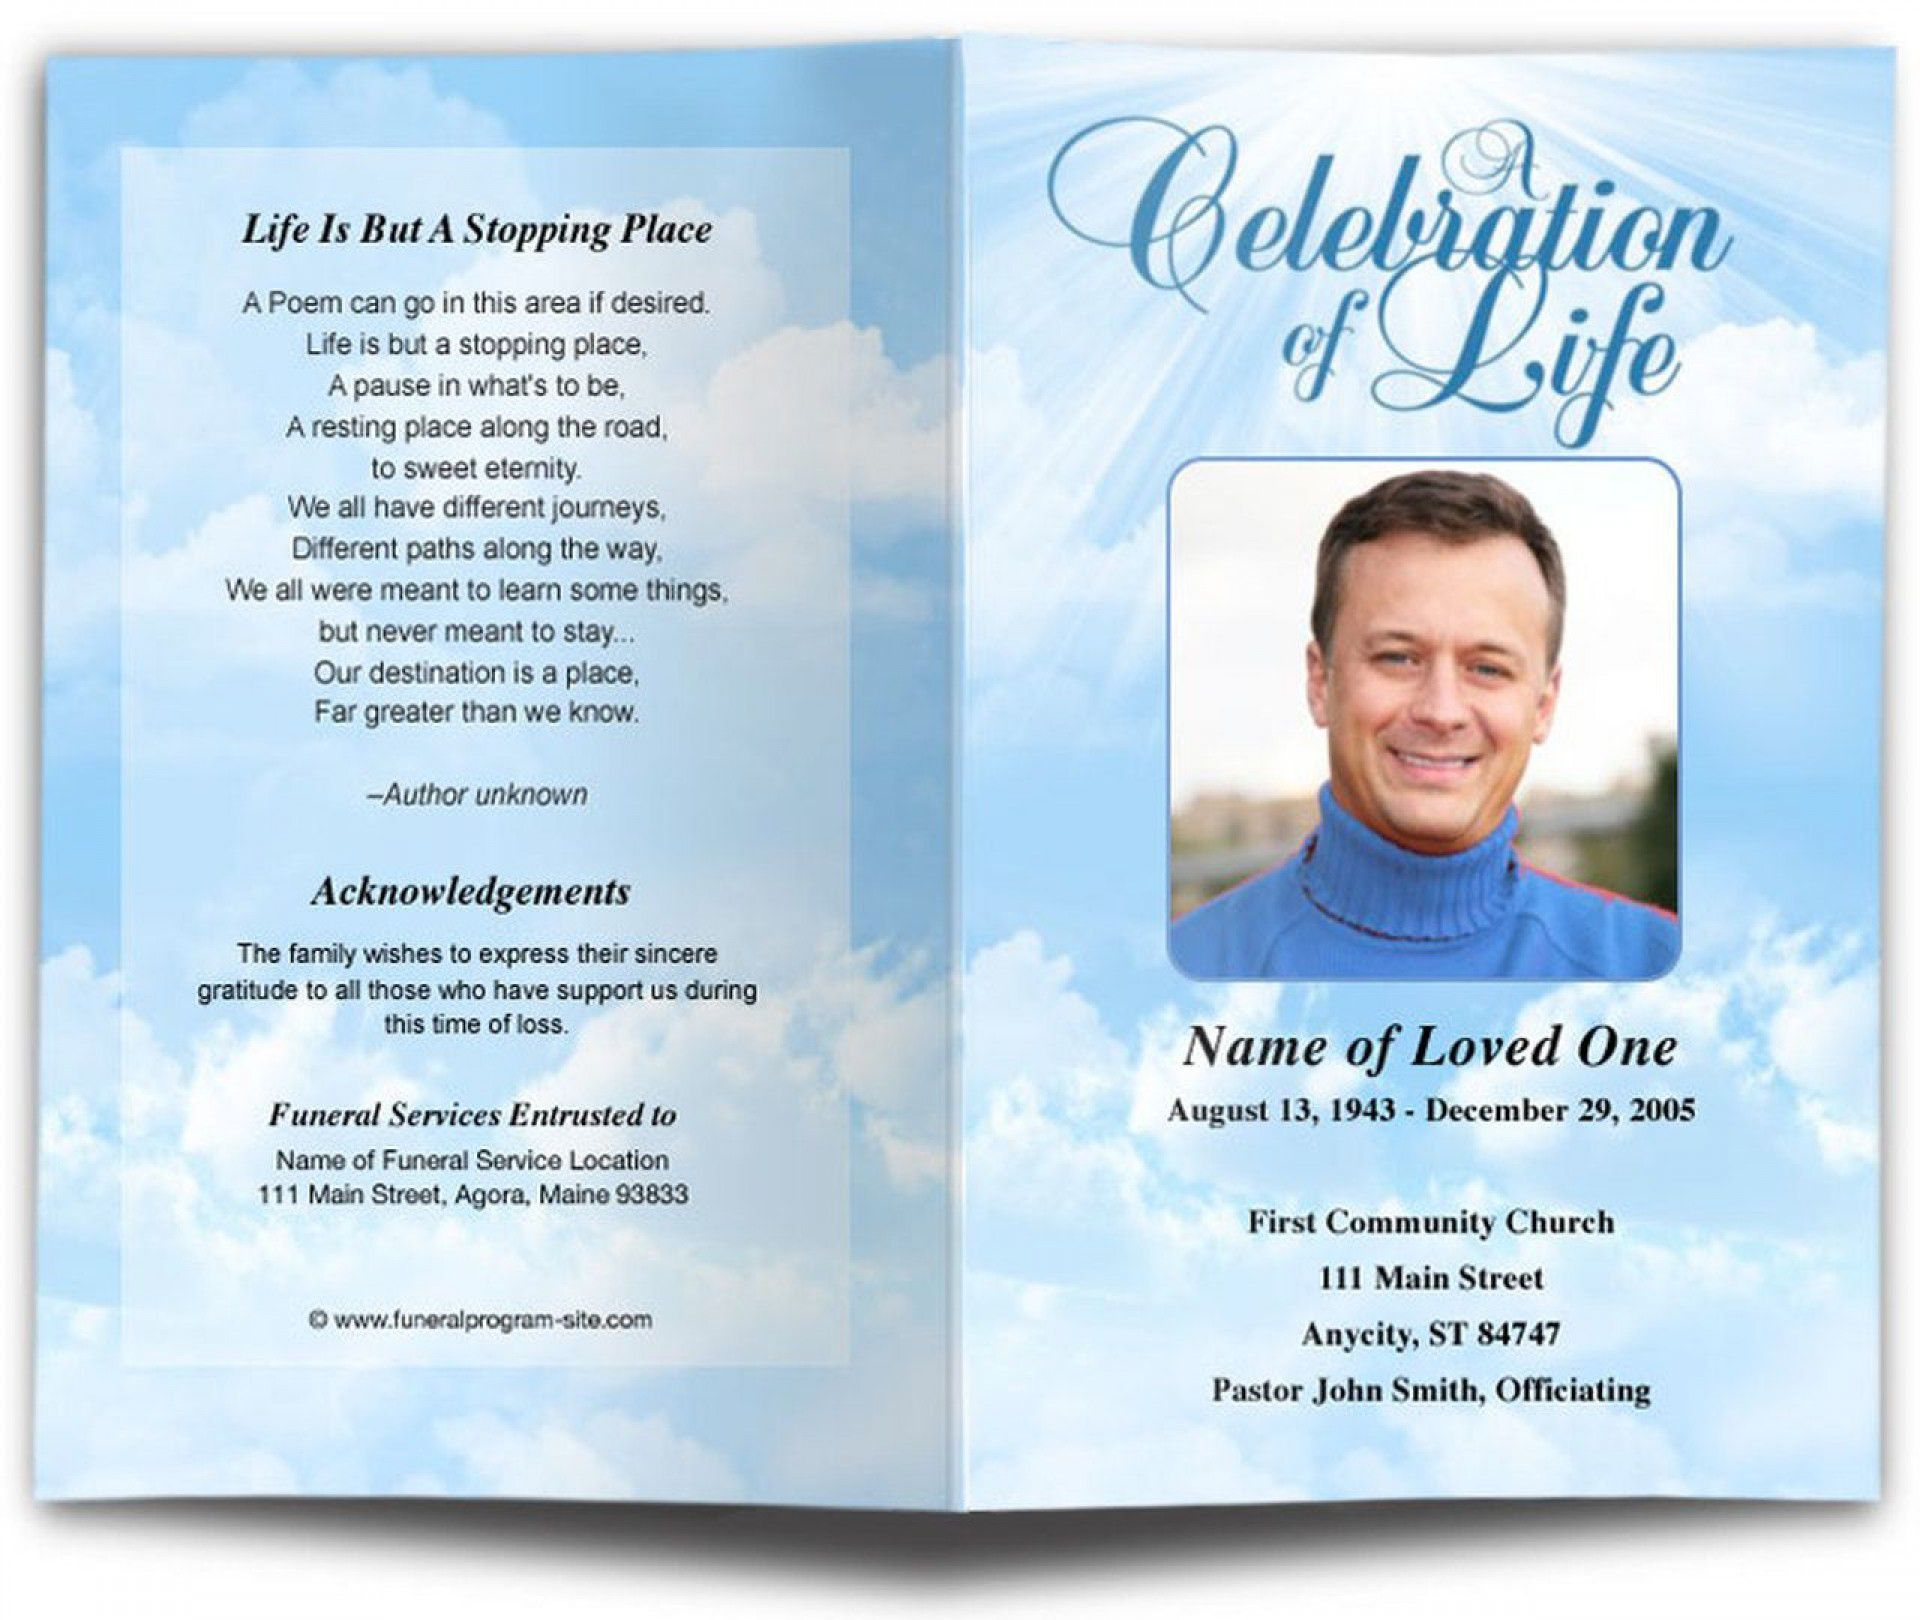 002 Awesome Free Download Template For Funeral Program Image Full